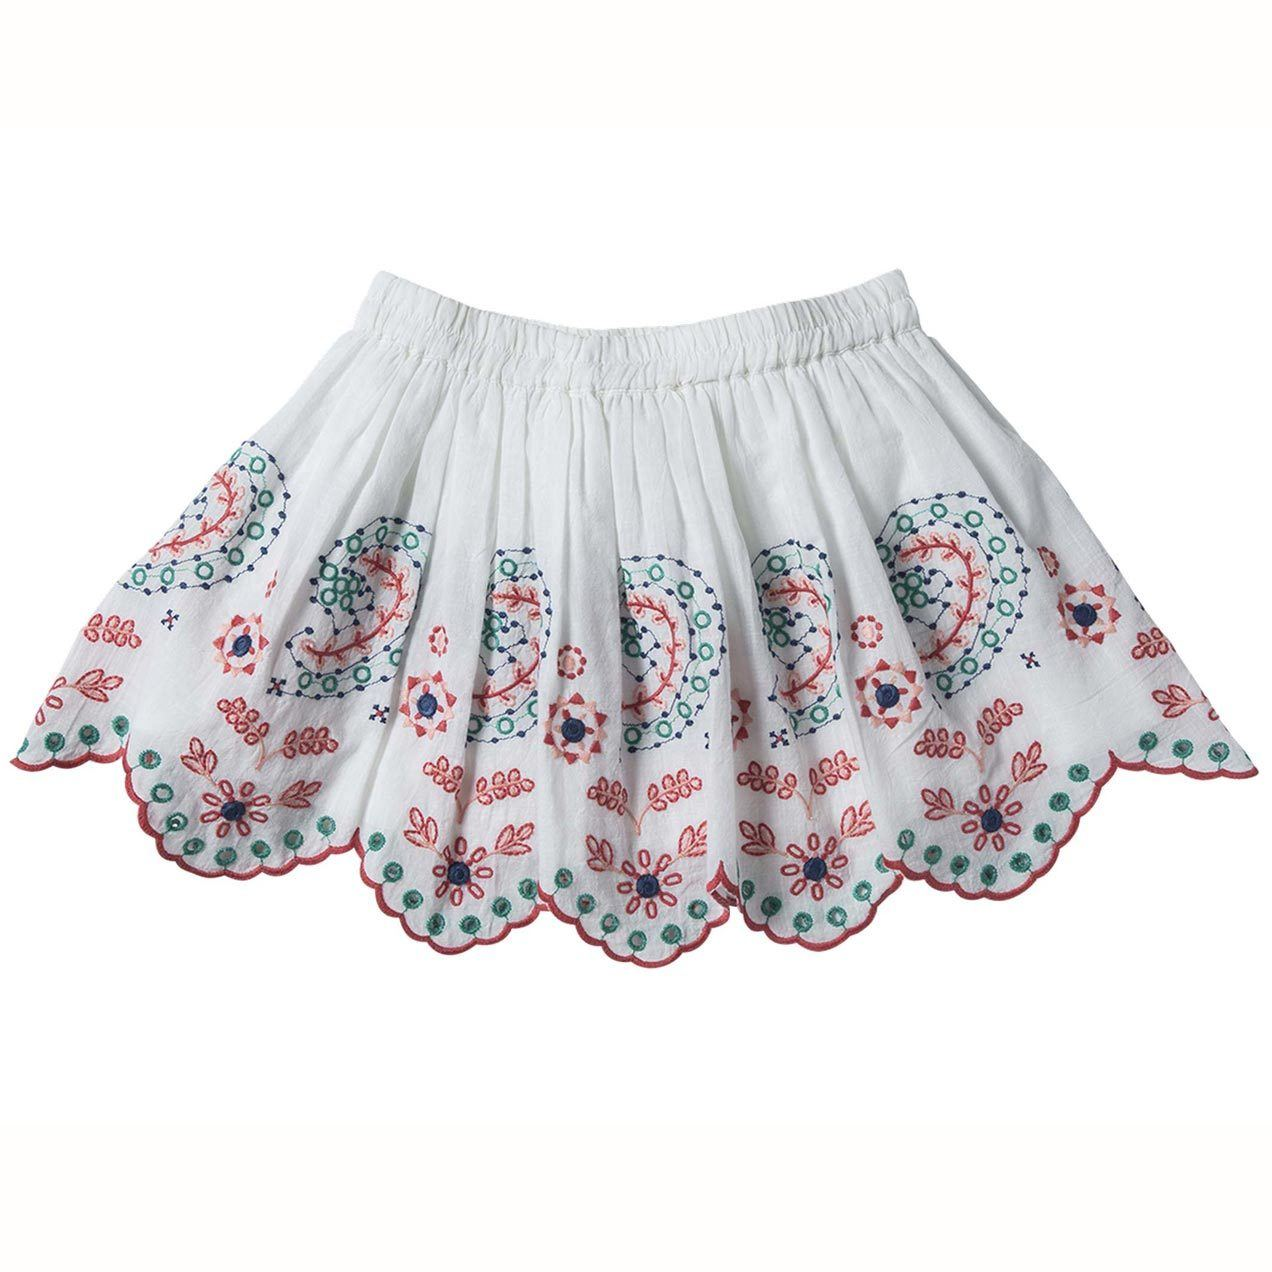 Bonheur Du Jour Mila Skirt Skirts, Girls bottoms, bottoms, girls - Tiny People Cool Kids Clothes